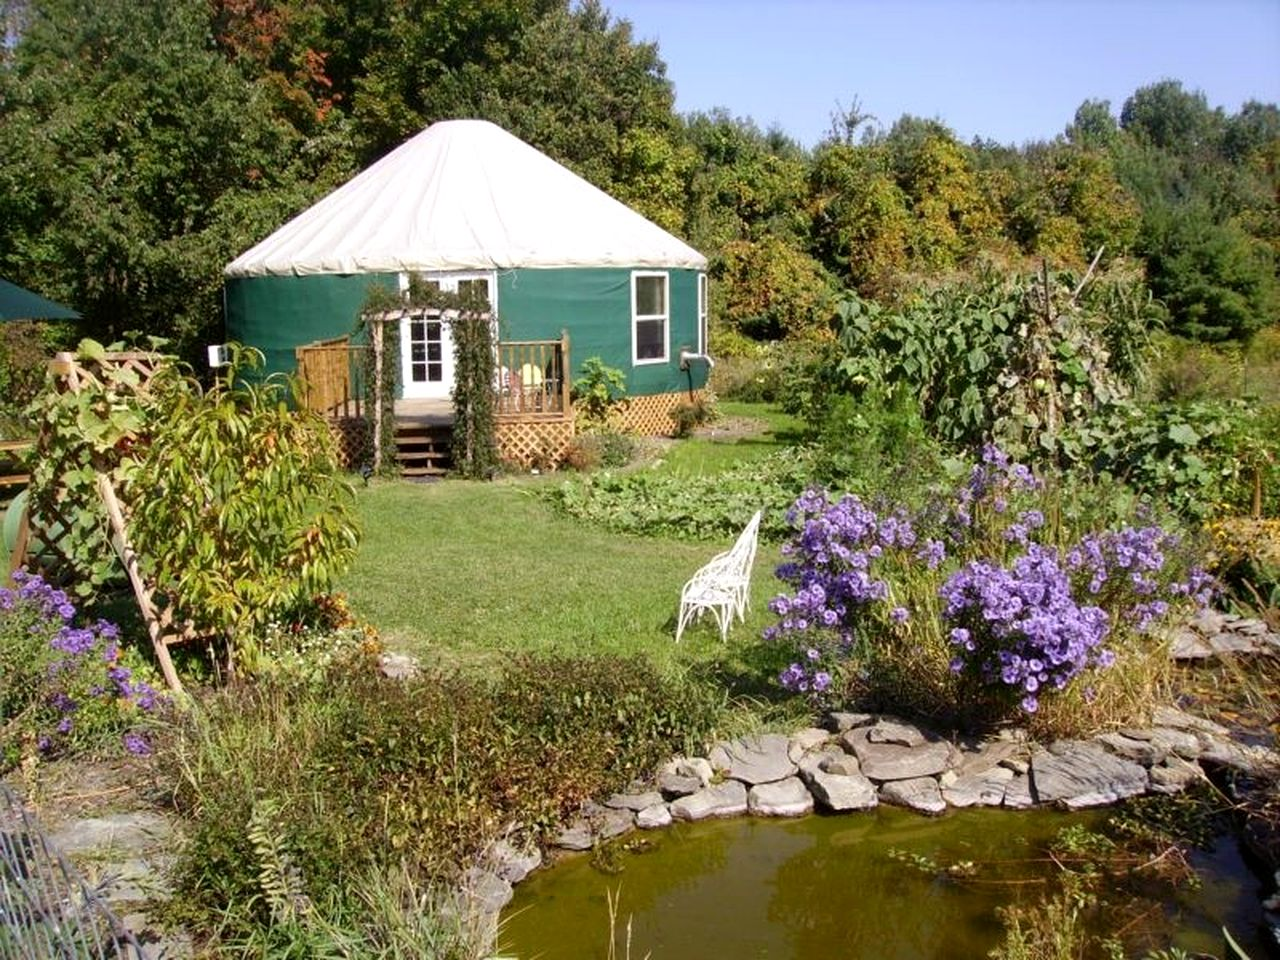 Yurts (Newfield, New York, United States)